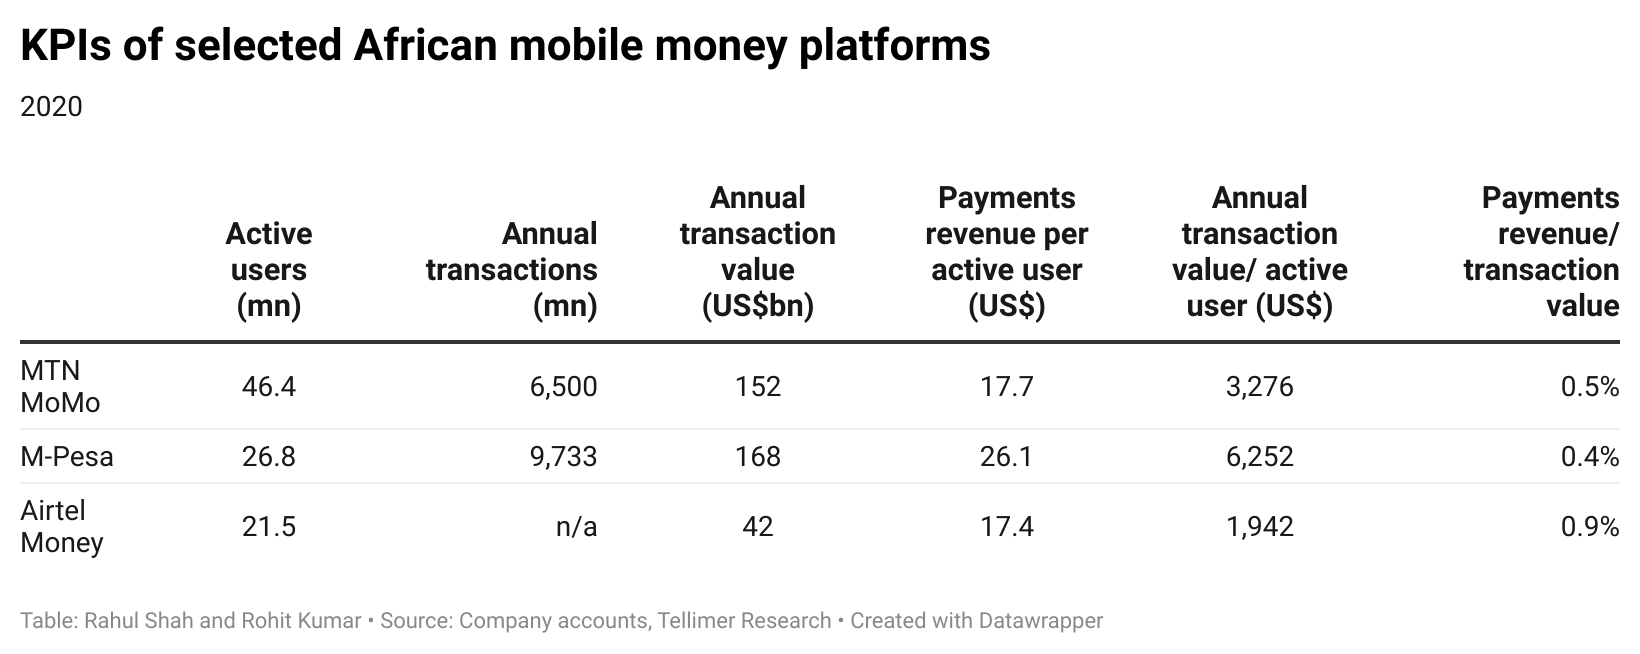 KPIs of selected African mobile money platforms